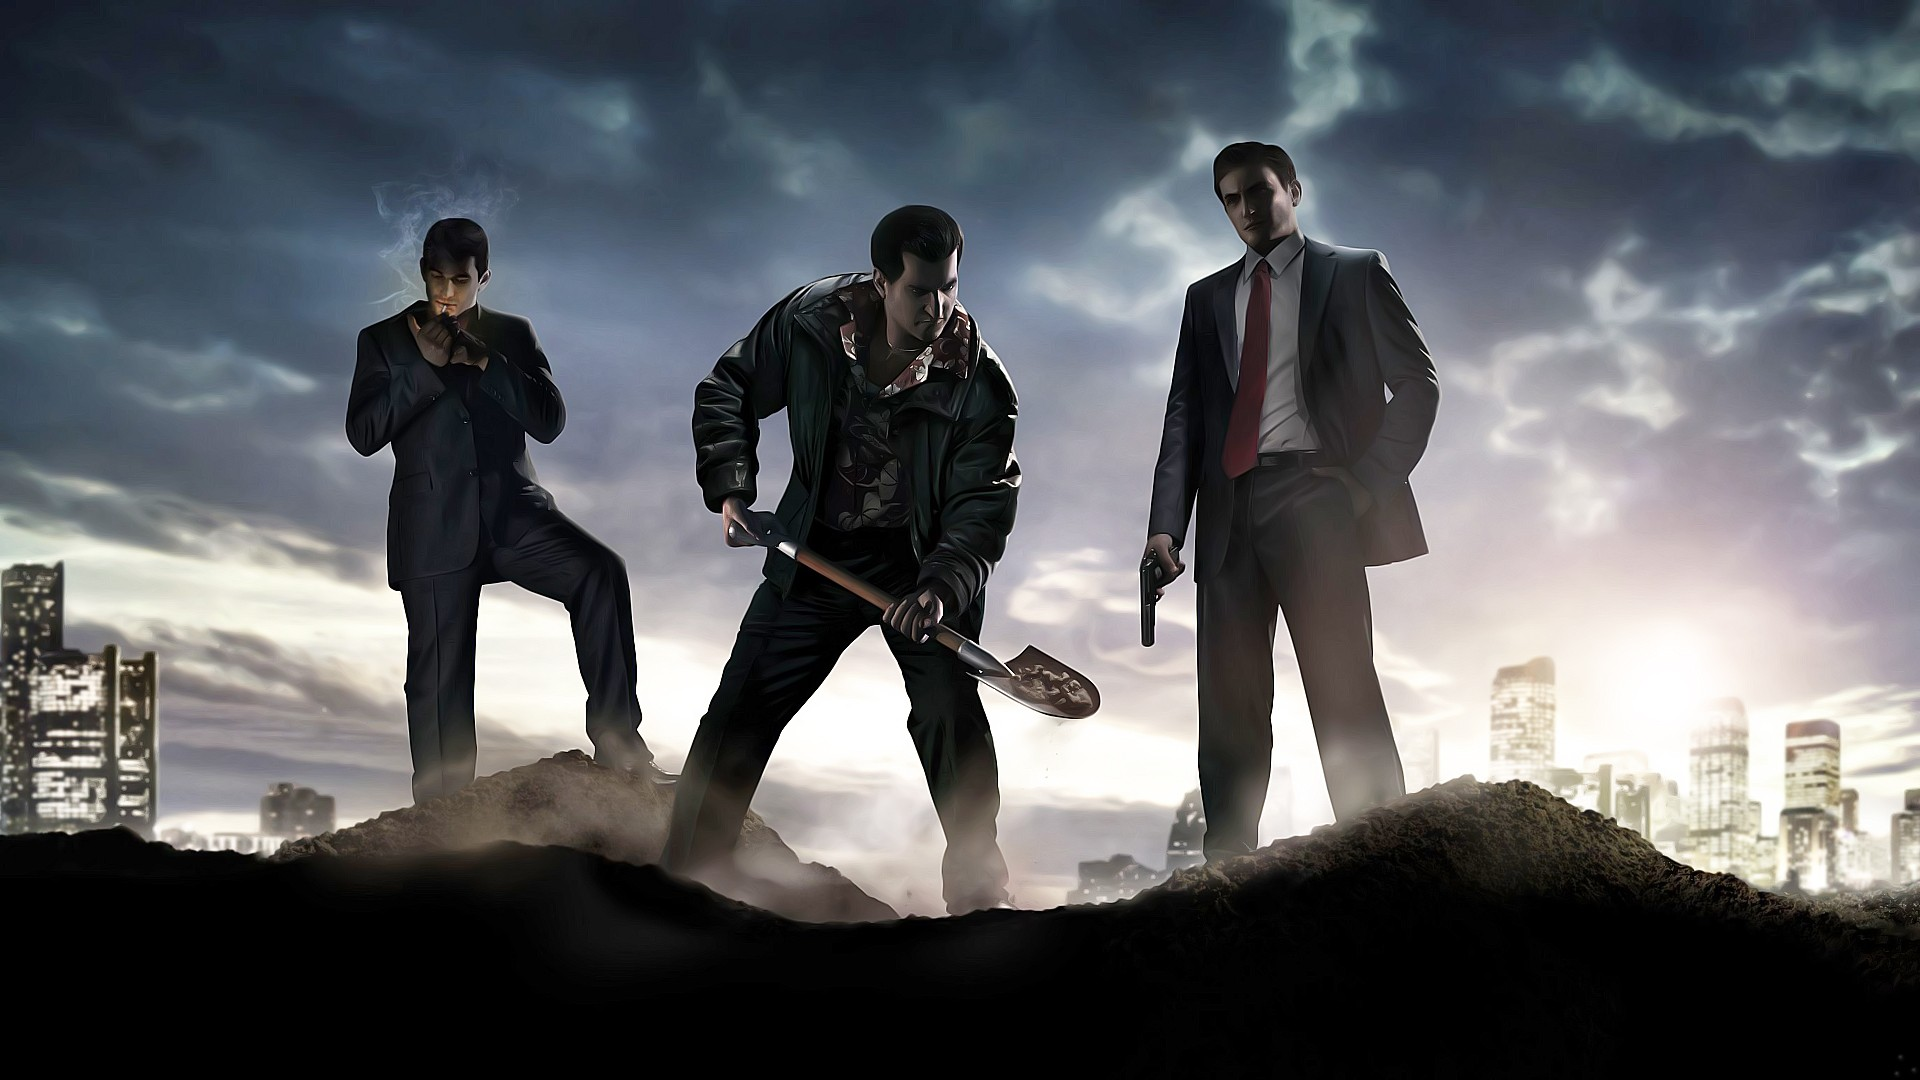 Background on the game Mafia 2